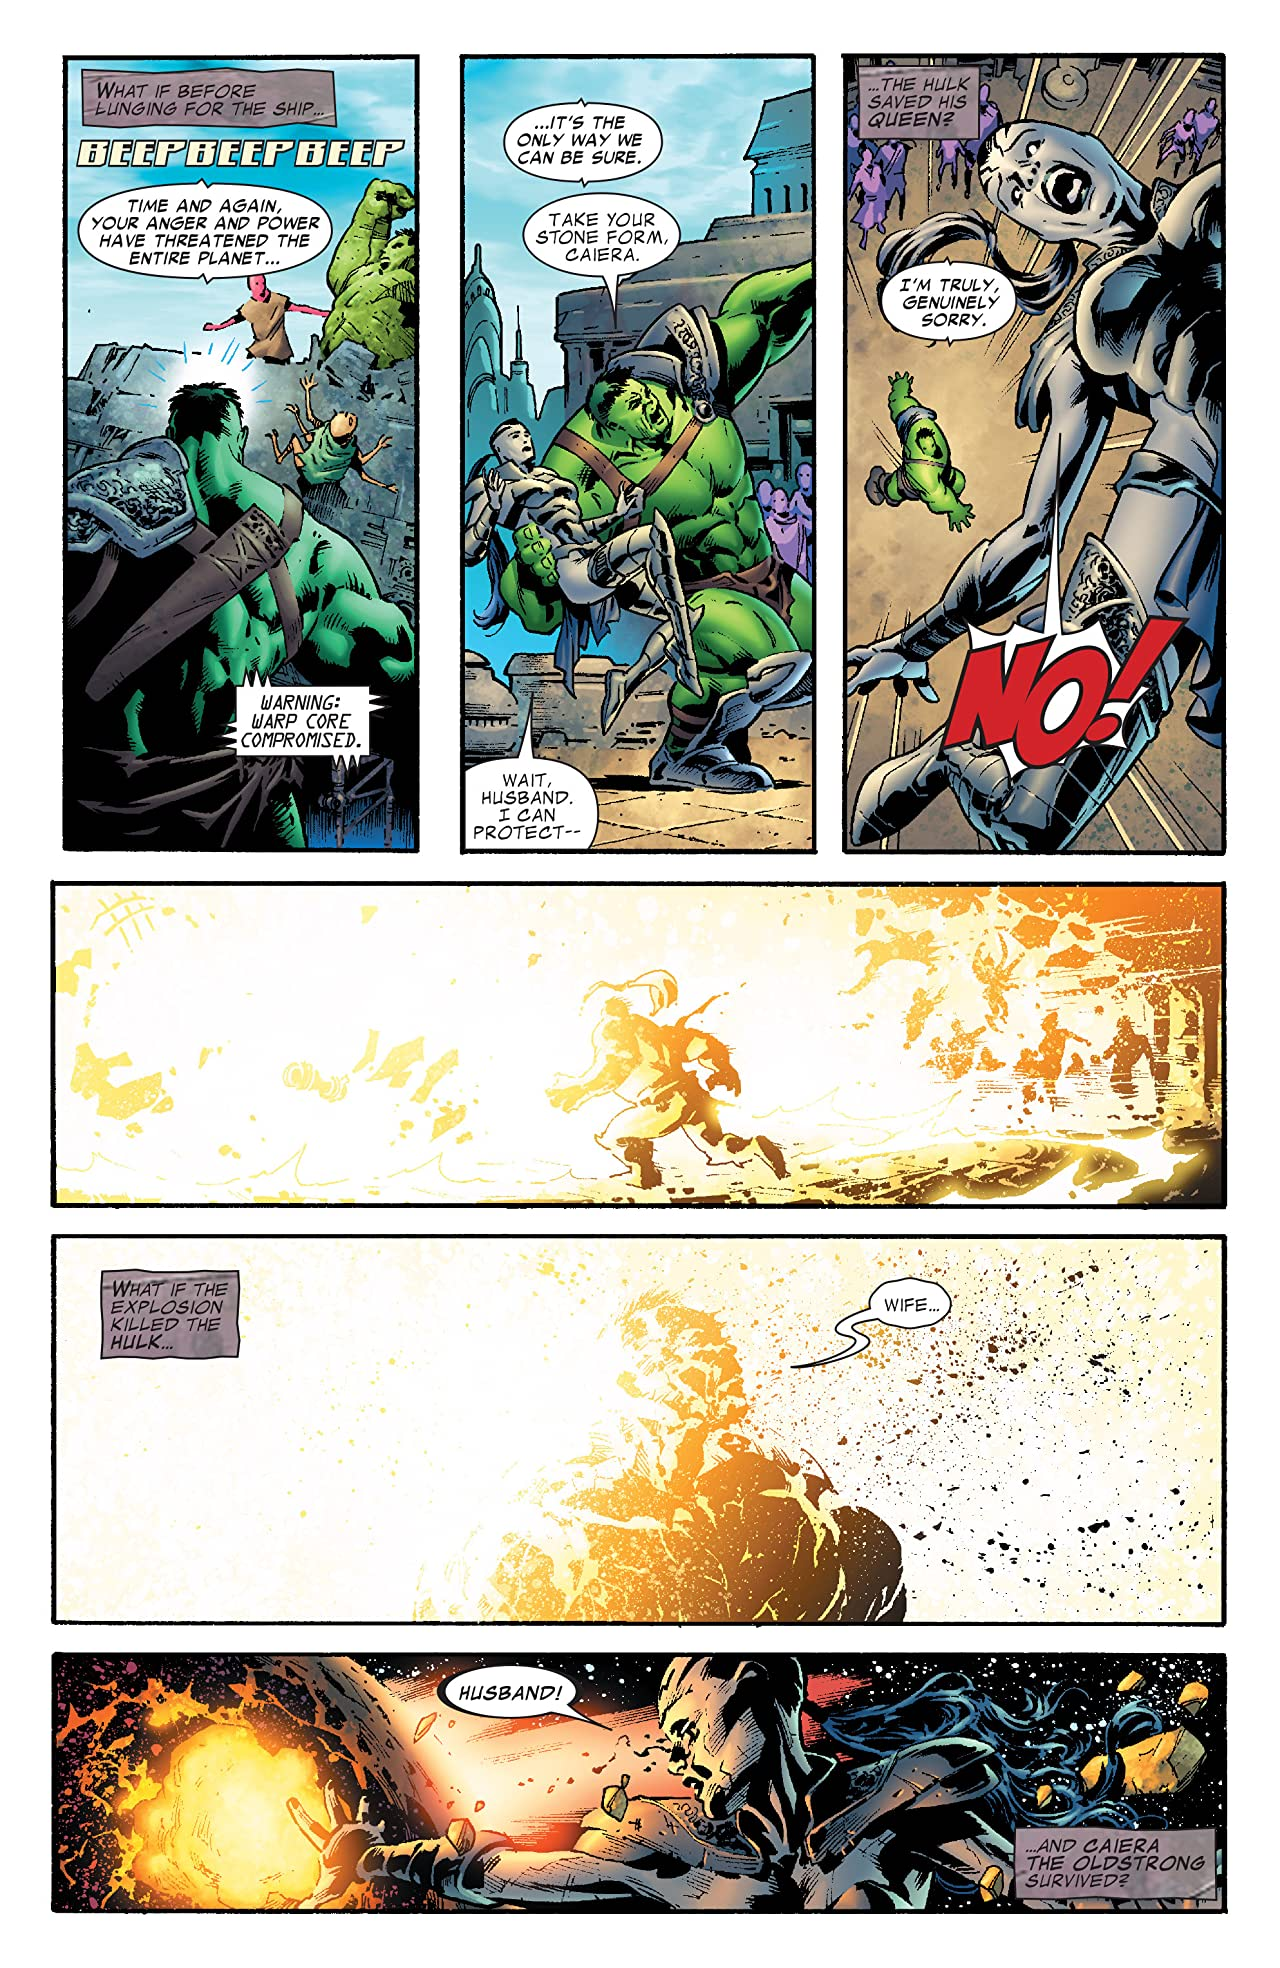 What If? Planet Hulk (2007) #1